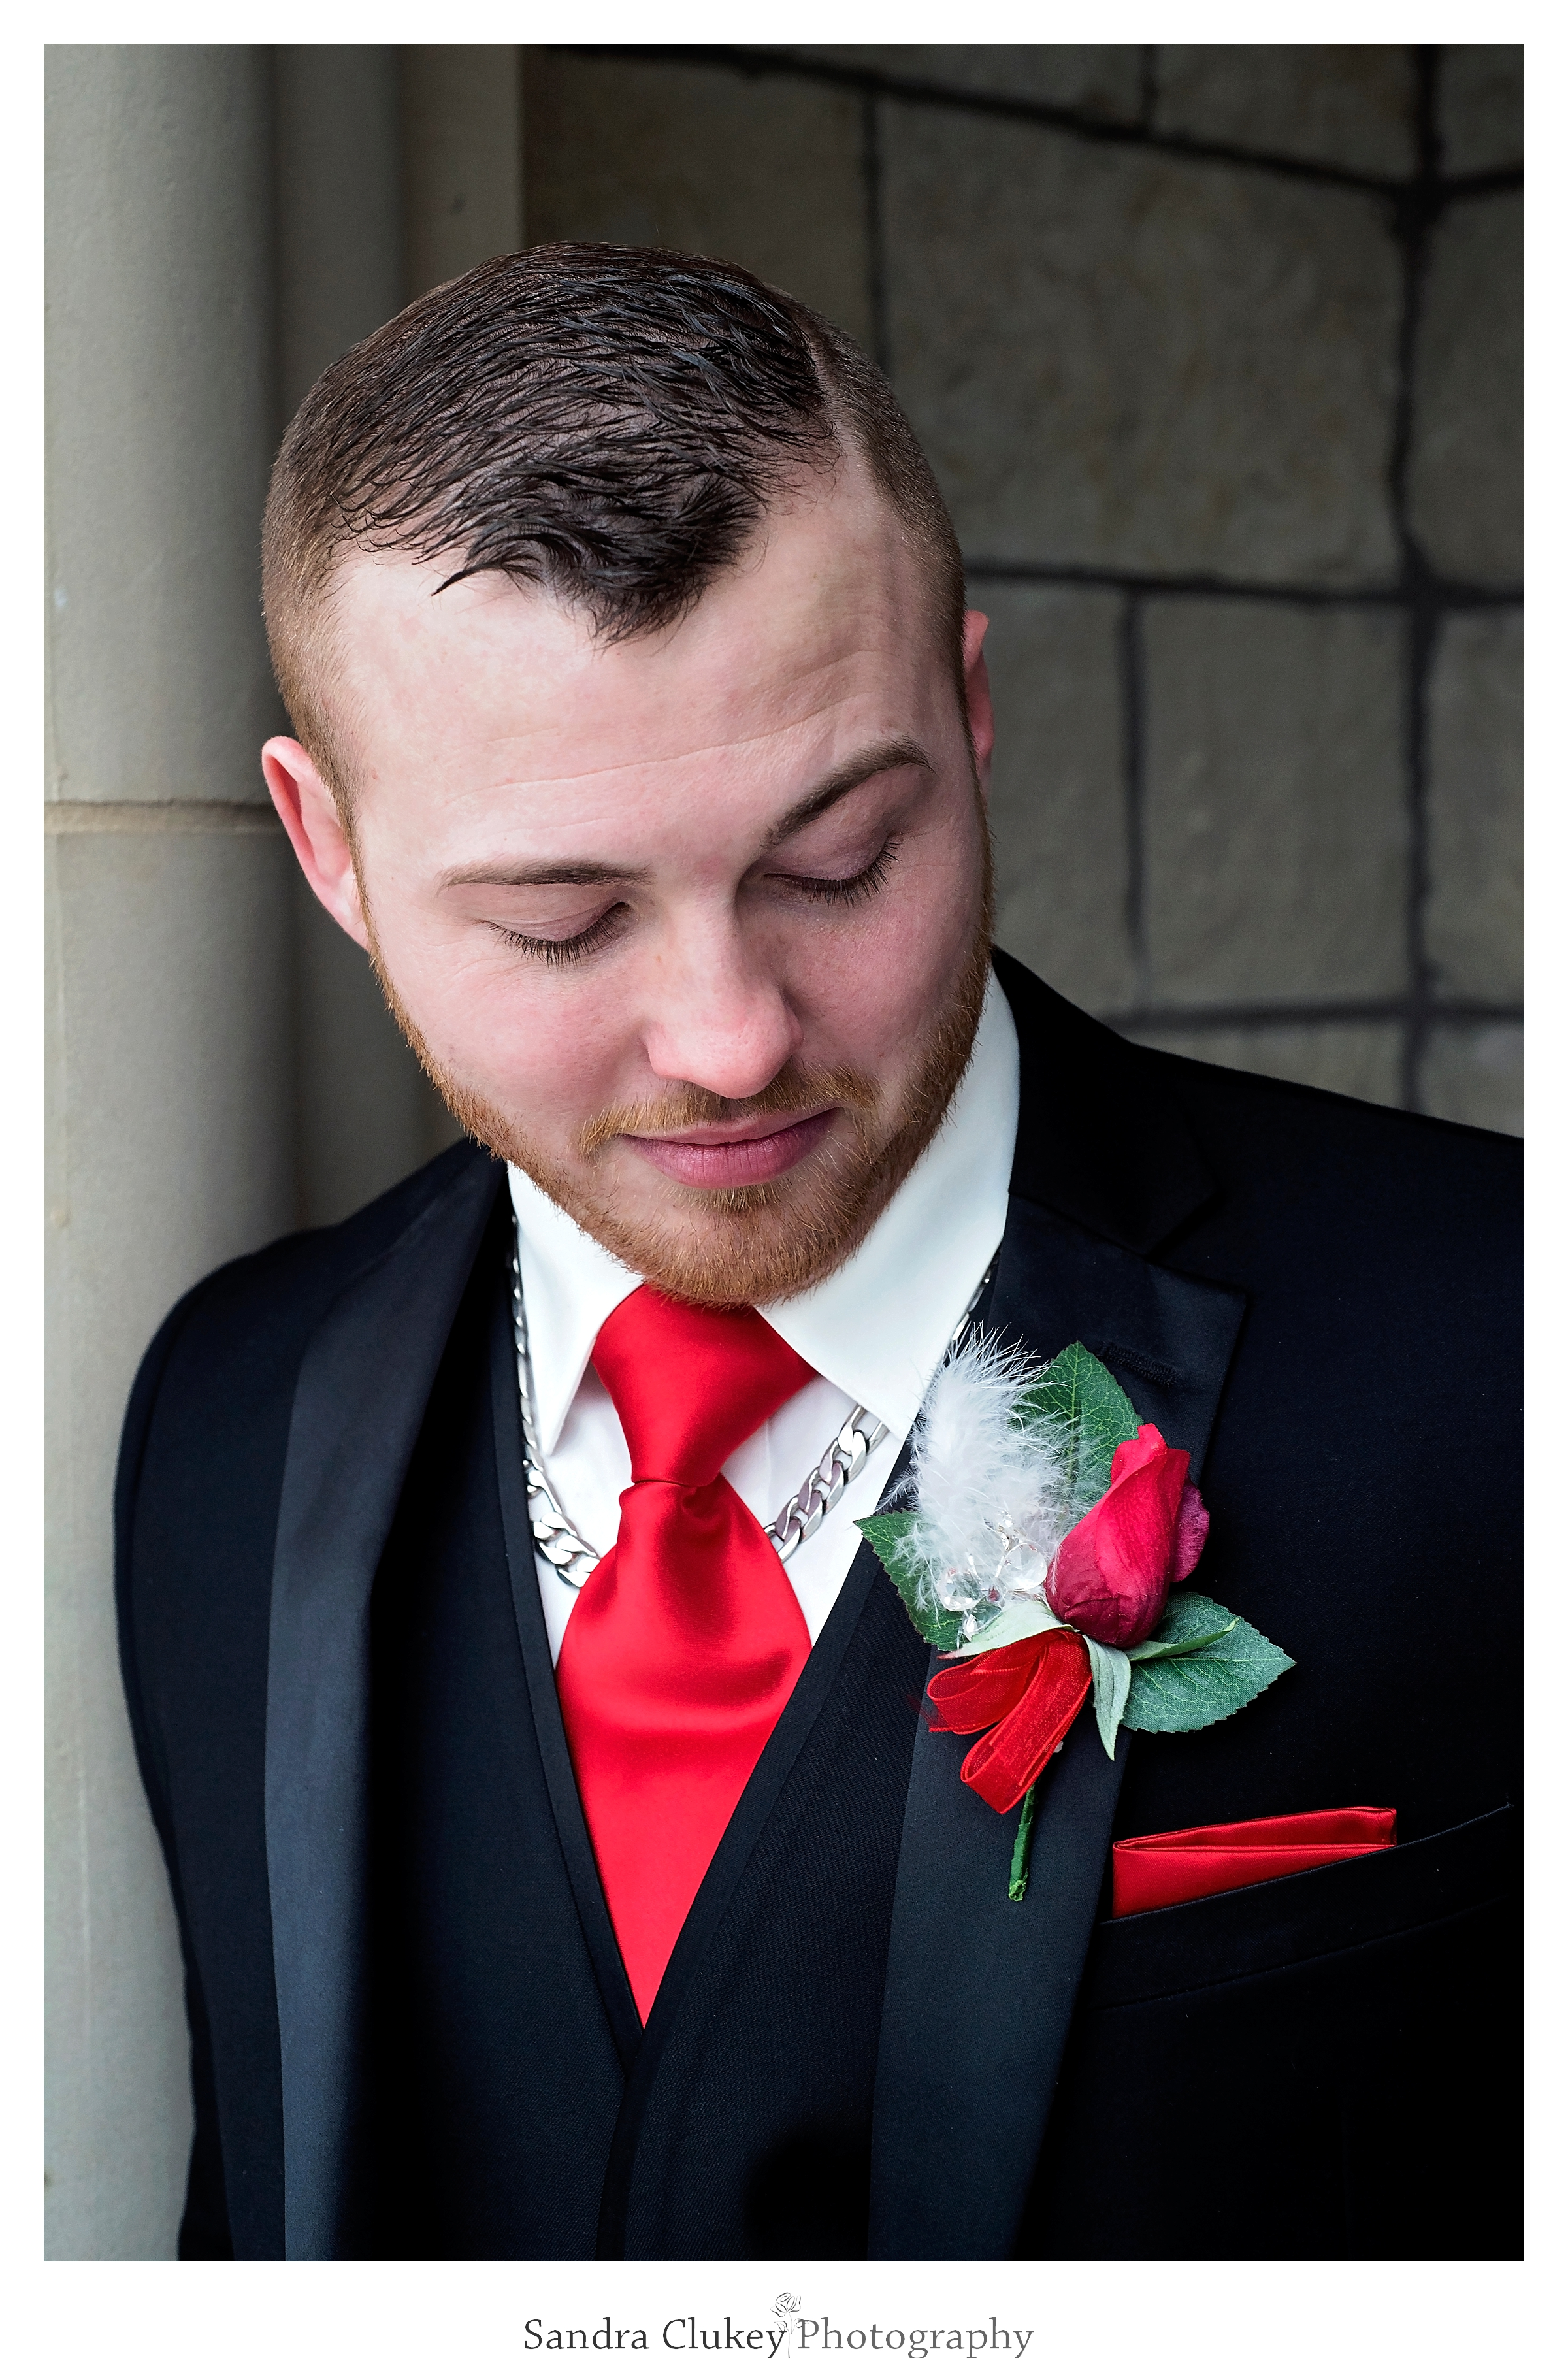 Handsome groom on wedding day at  Lee University chapel, Cleveland TN.